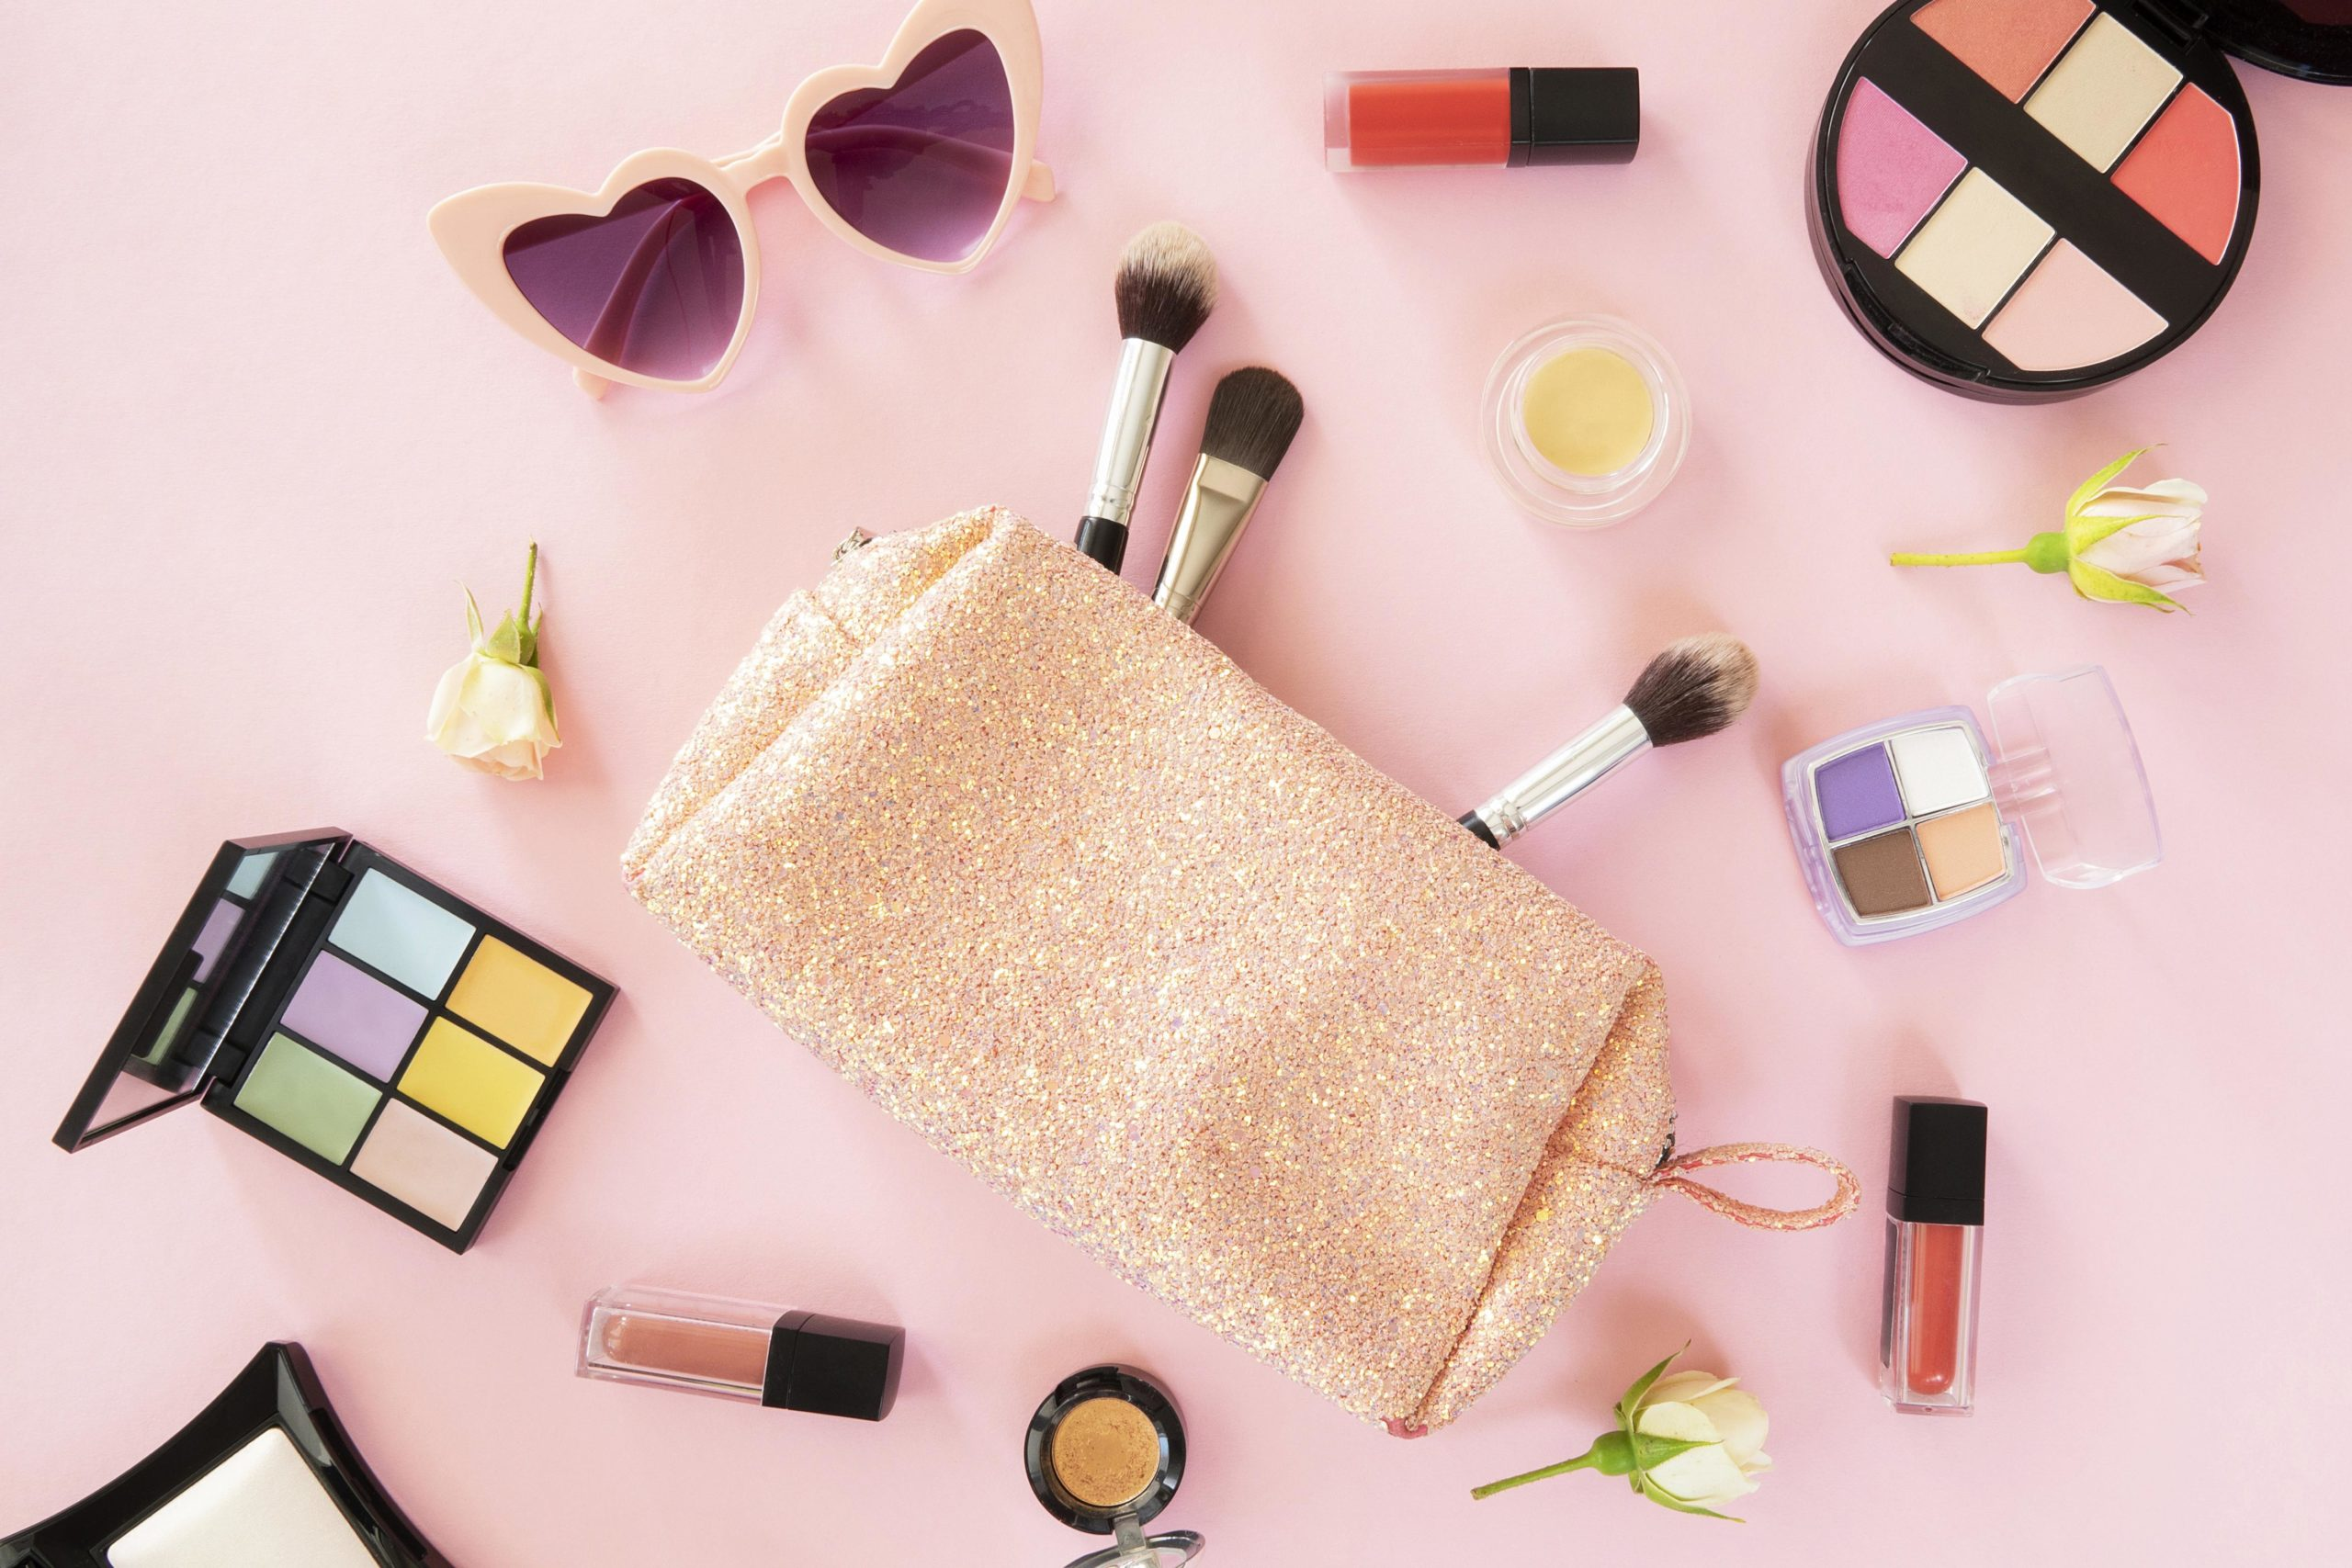 make-up-beauty-products-and-bag